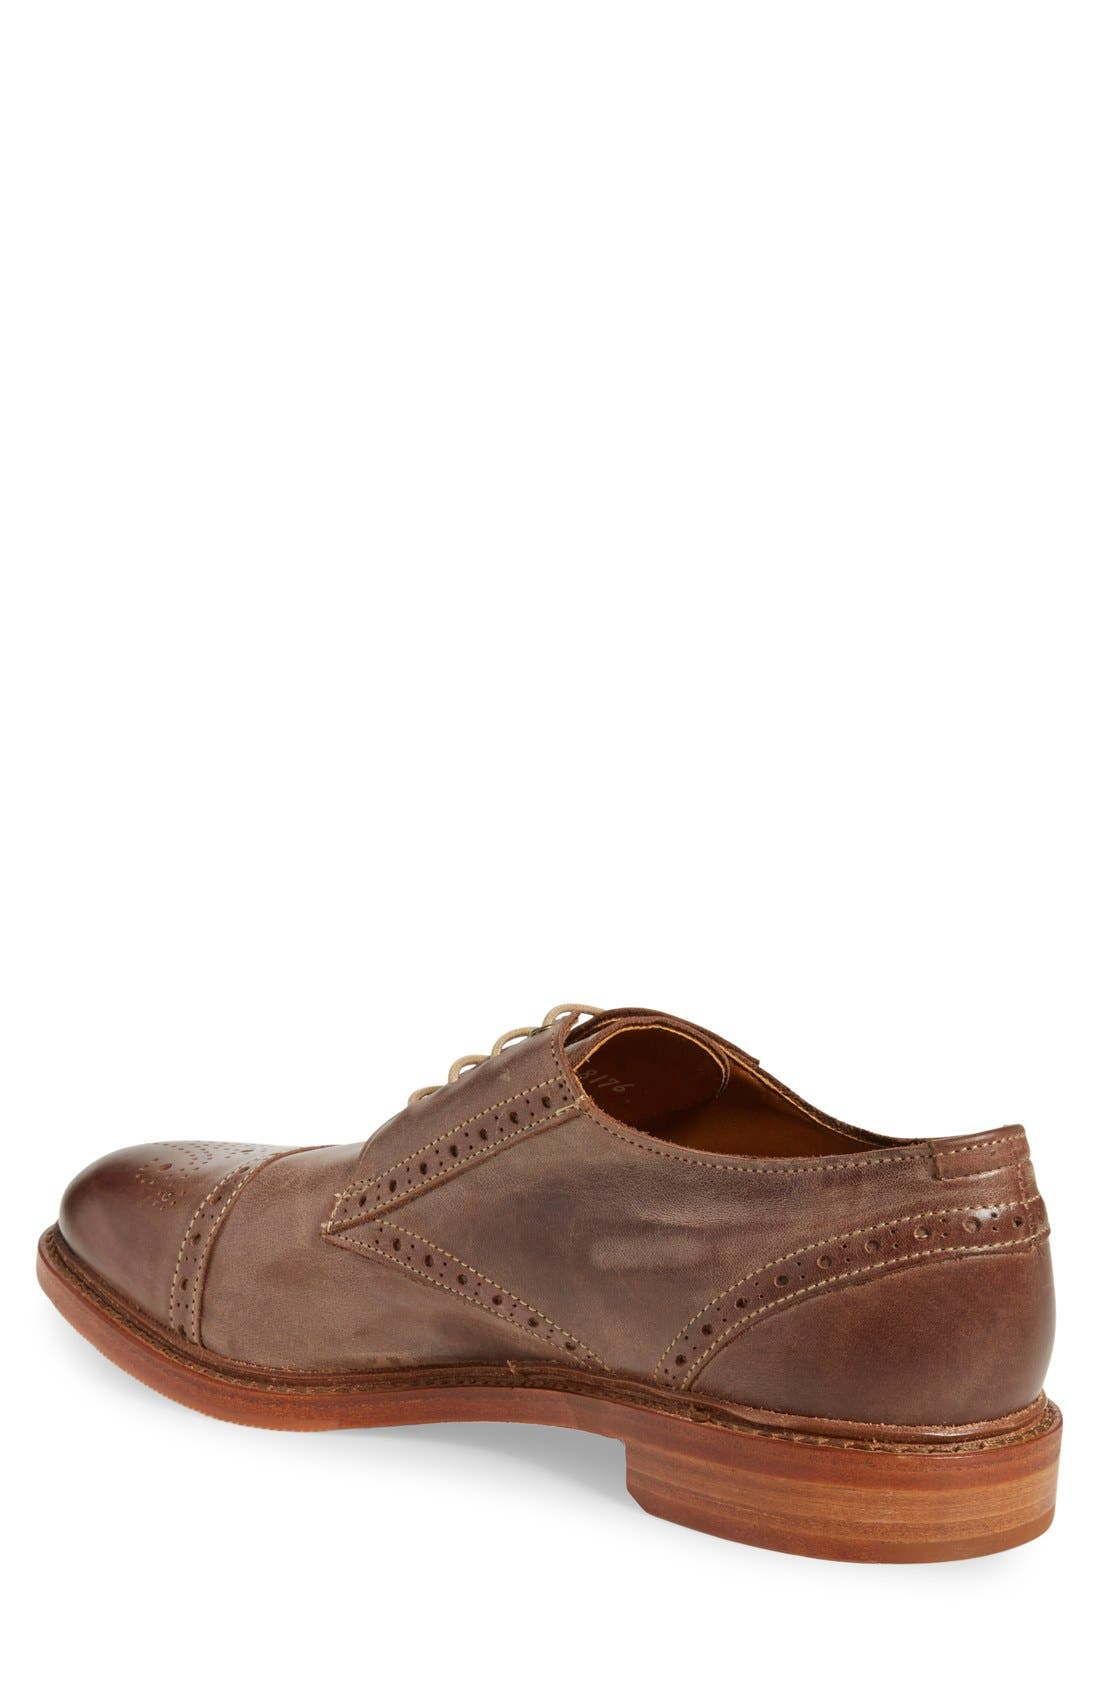 Alternate Image 2  - Allen Edmonds 'Bainbridge' Cap Toe Derby (Men)